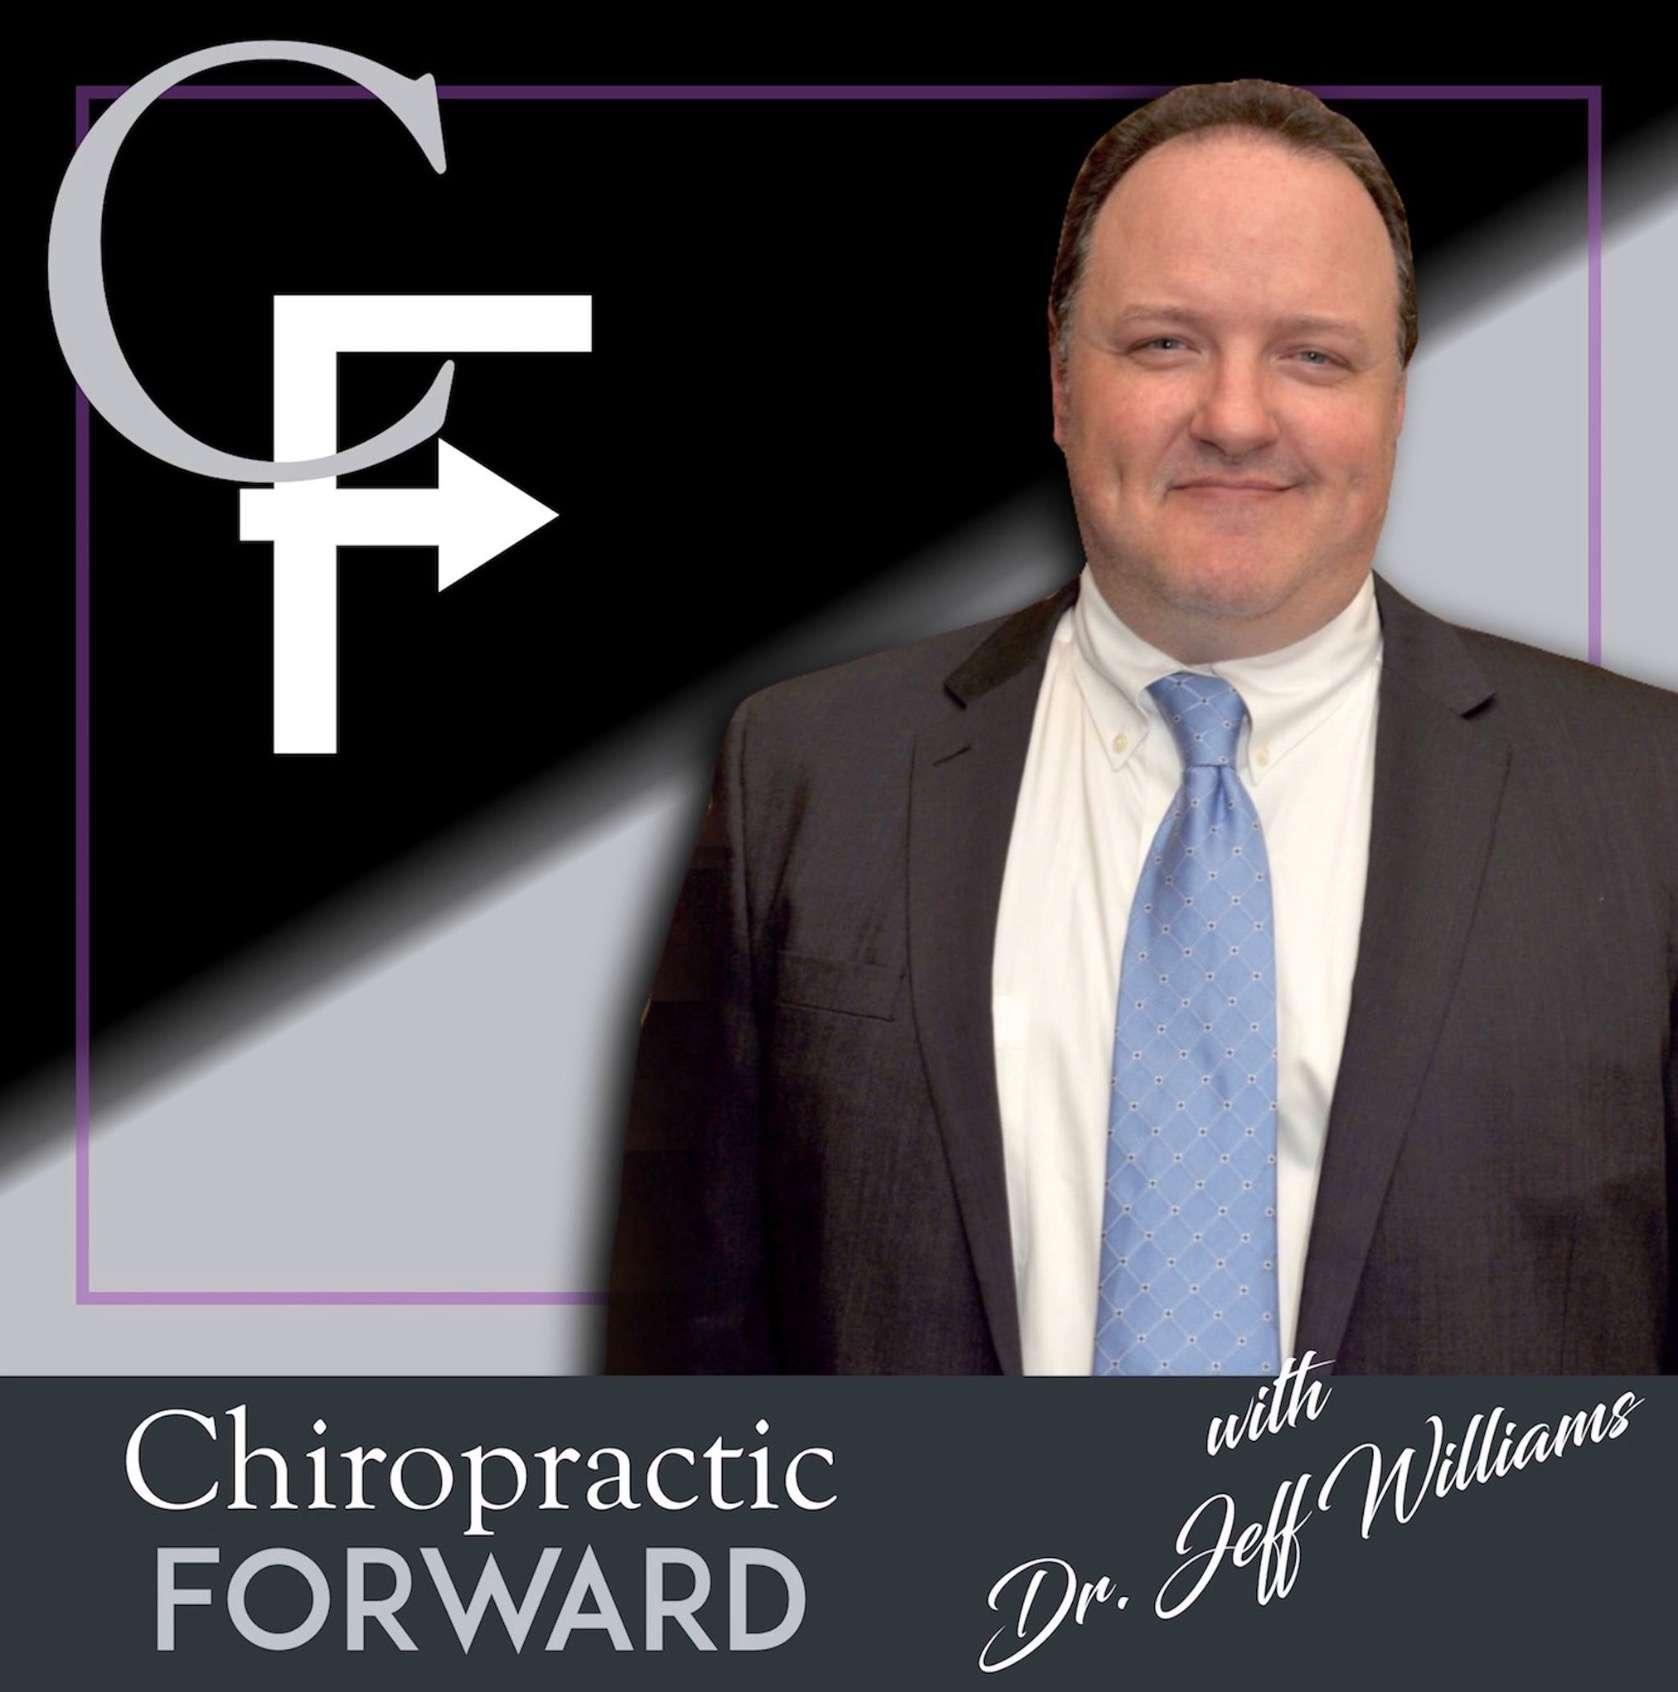 Chiropractic Forward Podcast - Jeff Williams, DC